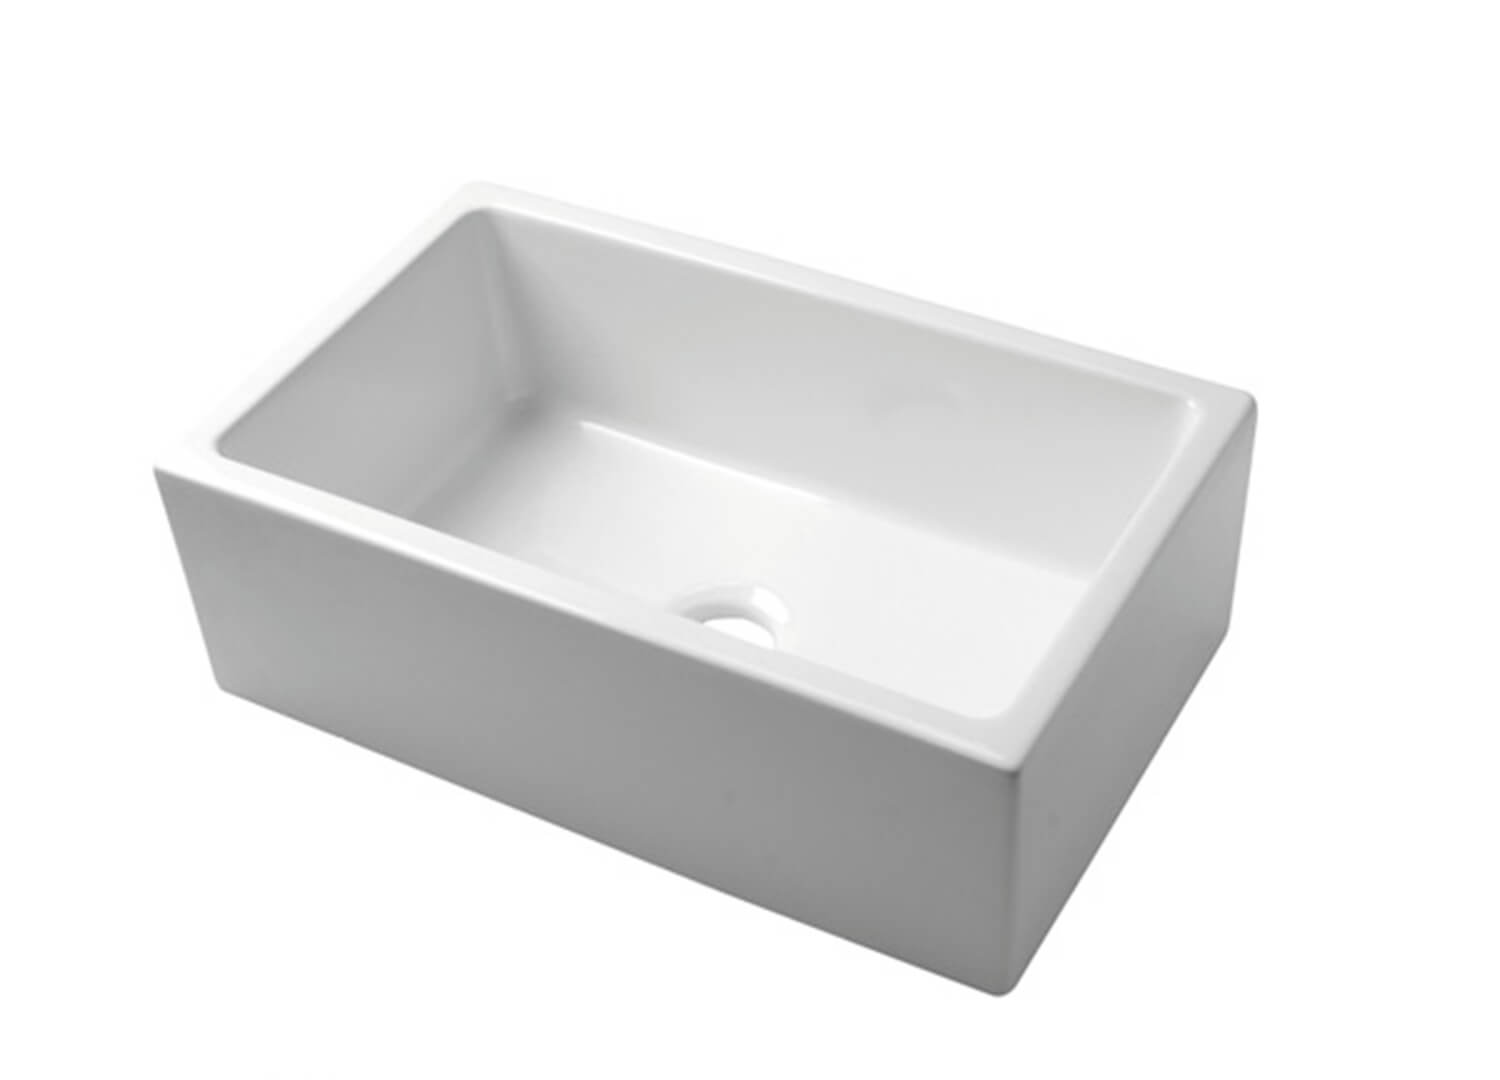 est-living-acquello-fireclay-single-sink-english-tapware